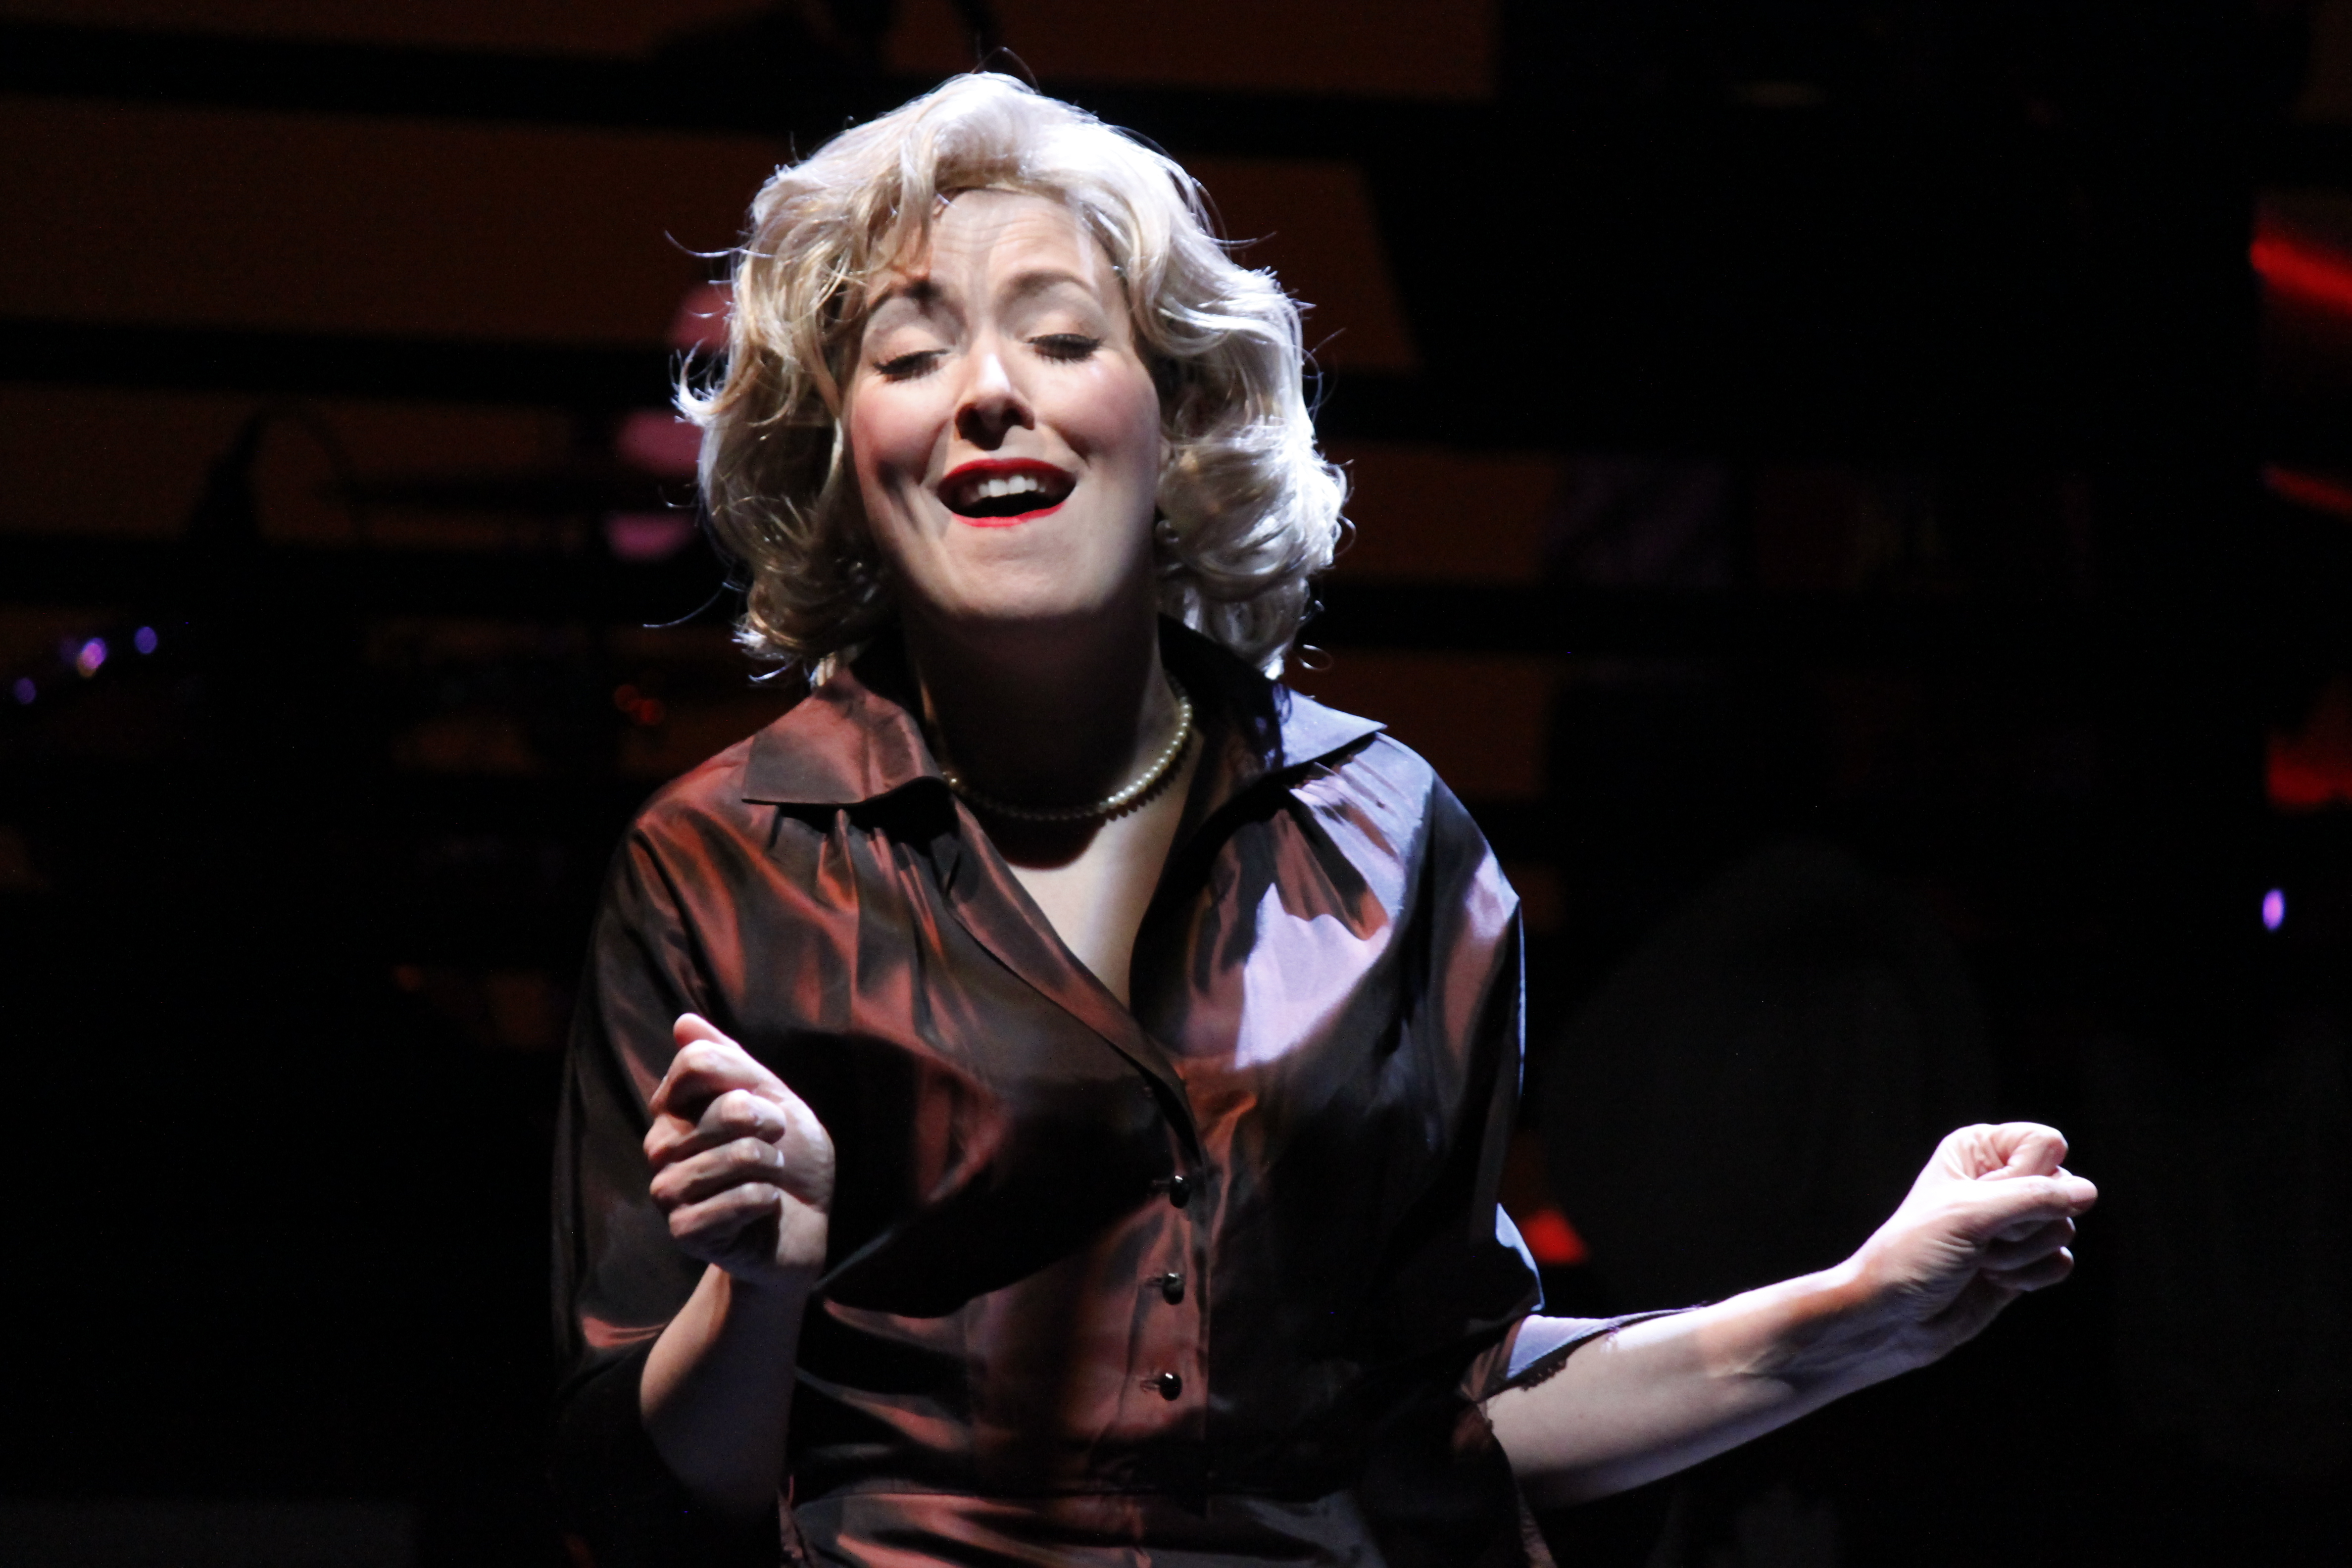 """Celebrate Valentine's Day with the Chicago Premiere of """"Tenderly: The Rosemary Clooney Musical"""" at the Raue Center 1 Celebrate Valentine's Day with Williams Street Repertory as they present the Chicago Premiere of """"Tenderly: The Rosemary Clooney Musical."""" America's sweetheart comes home in this exhilarating and inspiring musical biography.Make the day extra sweet with champagne and chocolates for two with the special Valentine's Day Weekend Package! Guests who purchase the package will enjoy two dark chocolate truffles with a smooth center courtesy of Mellie's Chocolate & Co. in downtown Crystal Lake as well as two pours of house Sparkling White Pierre Delize champagne."""